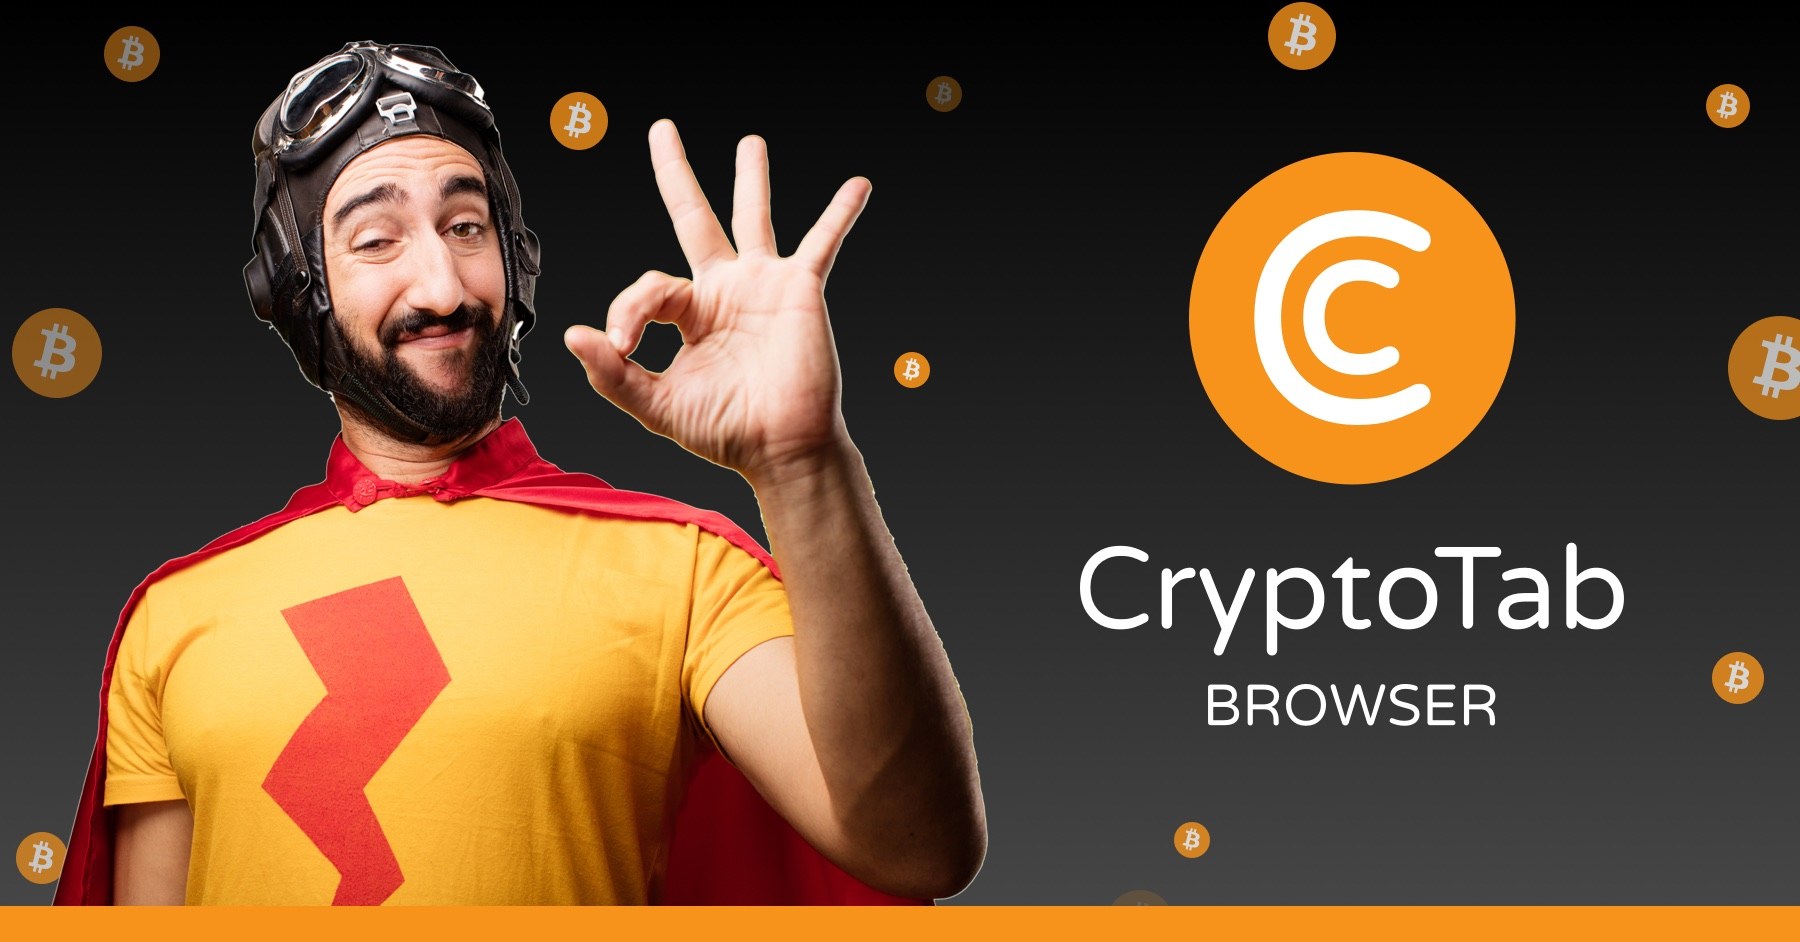 How to use your PC wisely? Let it earn some BTC for you! CryptoTab Browser is the easiest way to start mining and make your path to the world of cryptocurrency. Completely free and ready for instant mining — try it and you'll see the result!